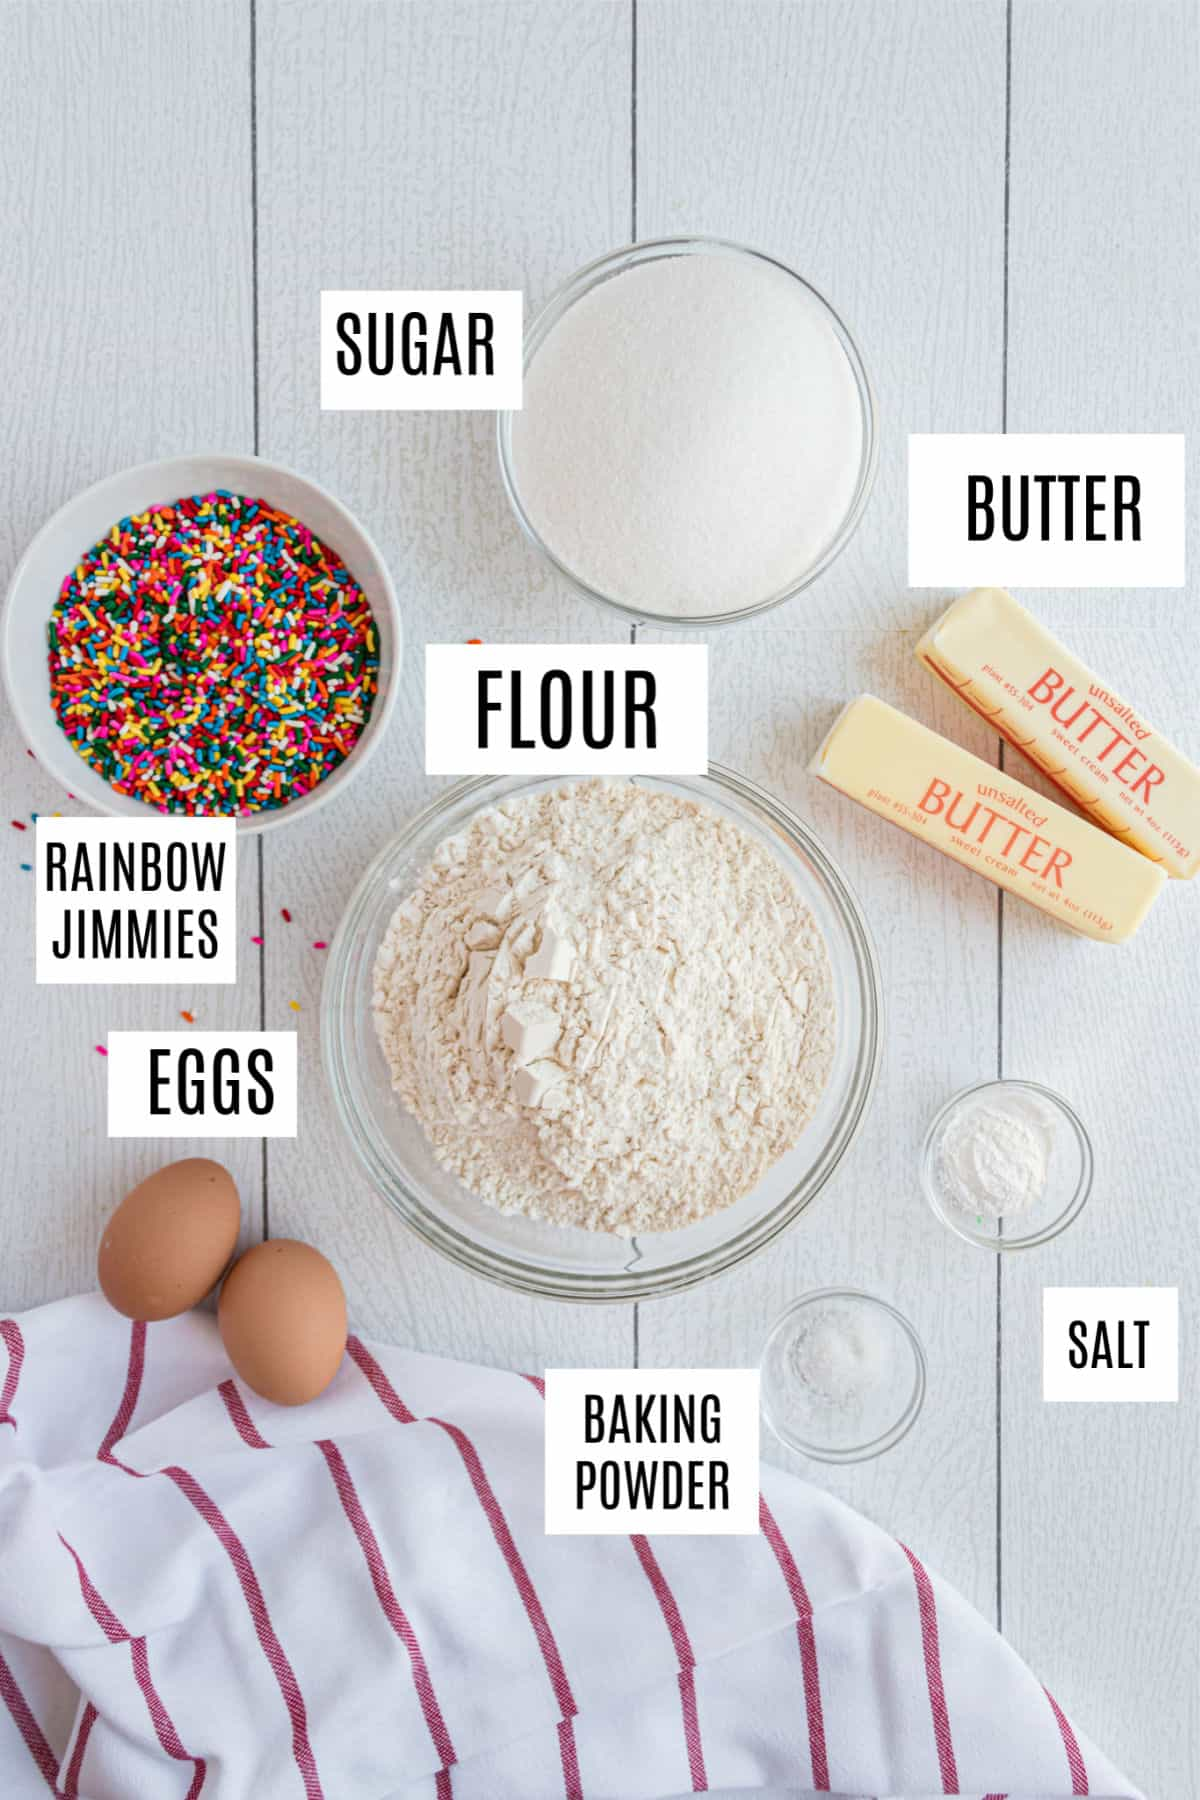 Ingredients needed to make funfetti cookies, including colorful sprinkles.